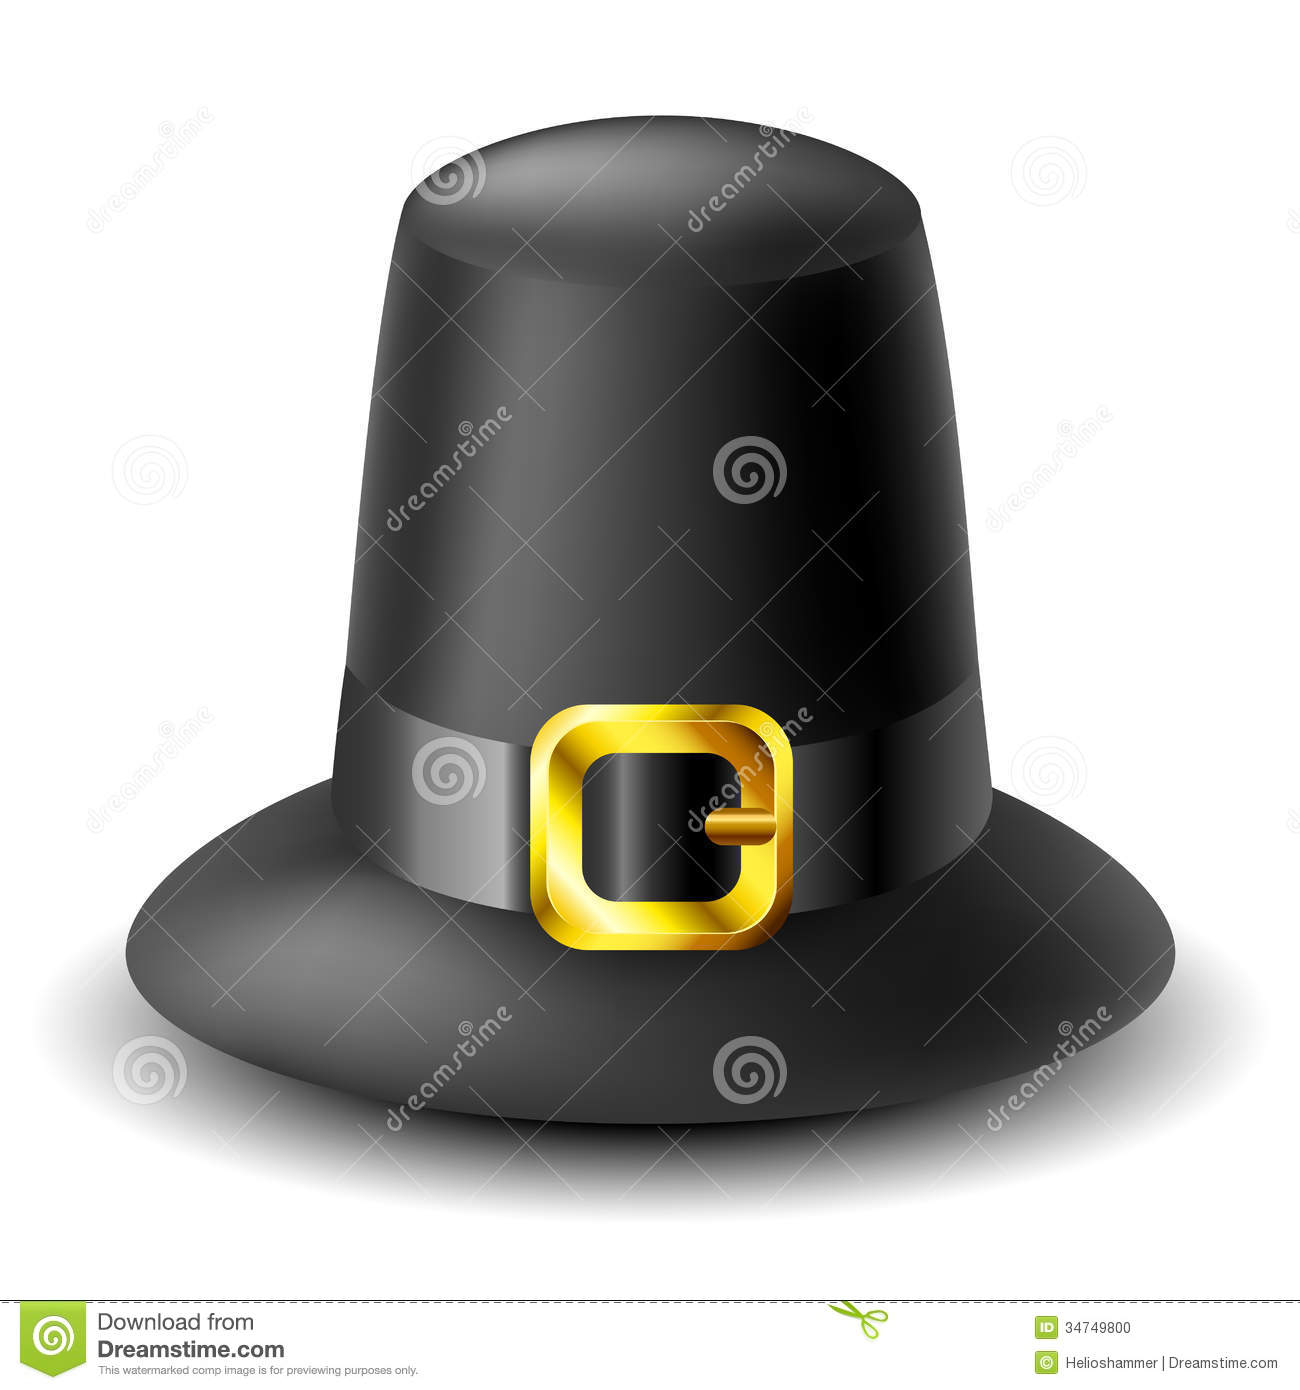 Black thanksgiving pilgrim hat with gold buckle on white